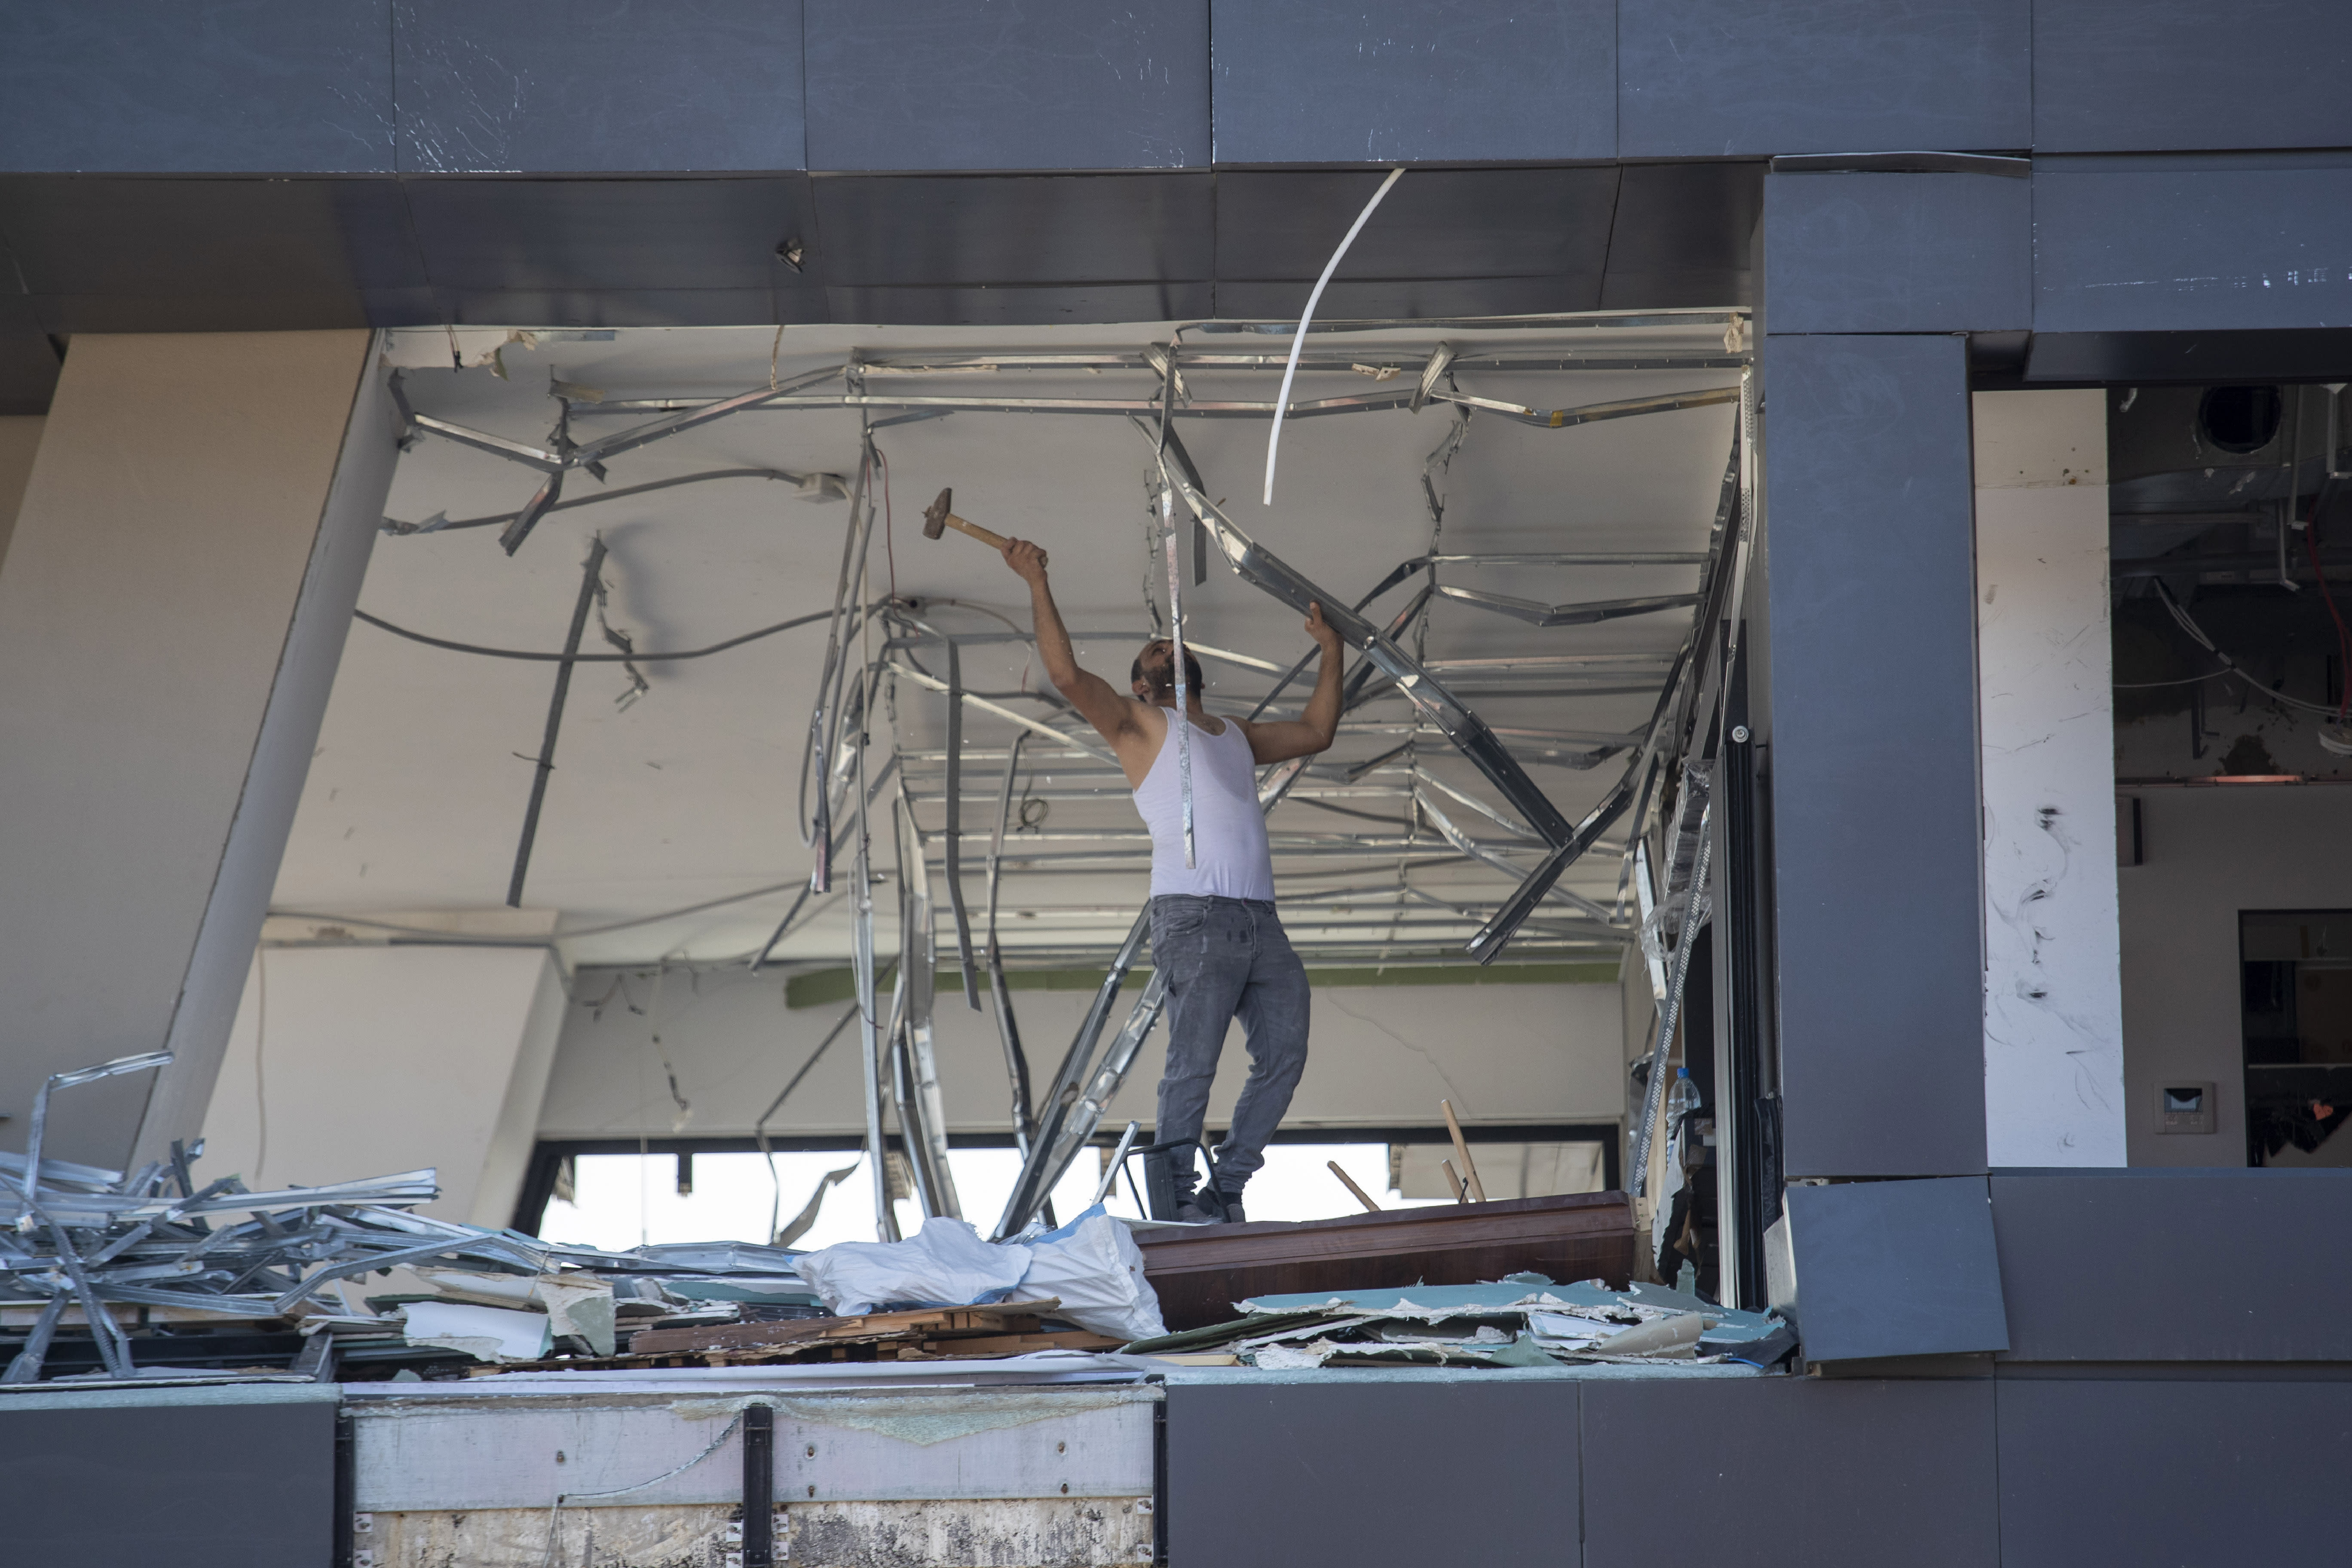 A man removes debris from a damaged building near the site of the Aug. 4 explosion that killed more than 170 people, injured thousands and caused widespread destruction, in Beirut, Lebanon, Friday, Aug. 14, 2020. (AP Photo/Hassan Ammar)